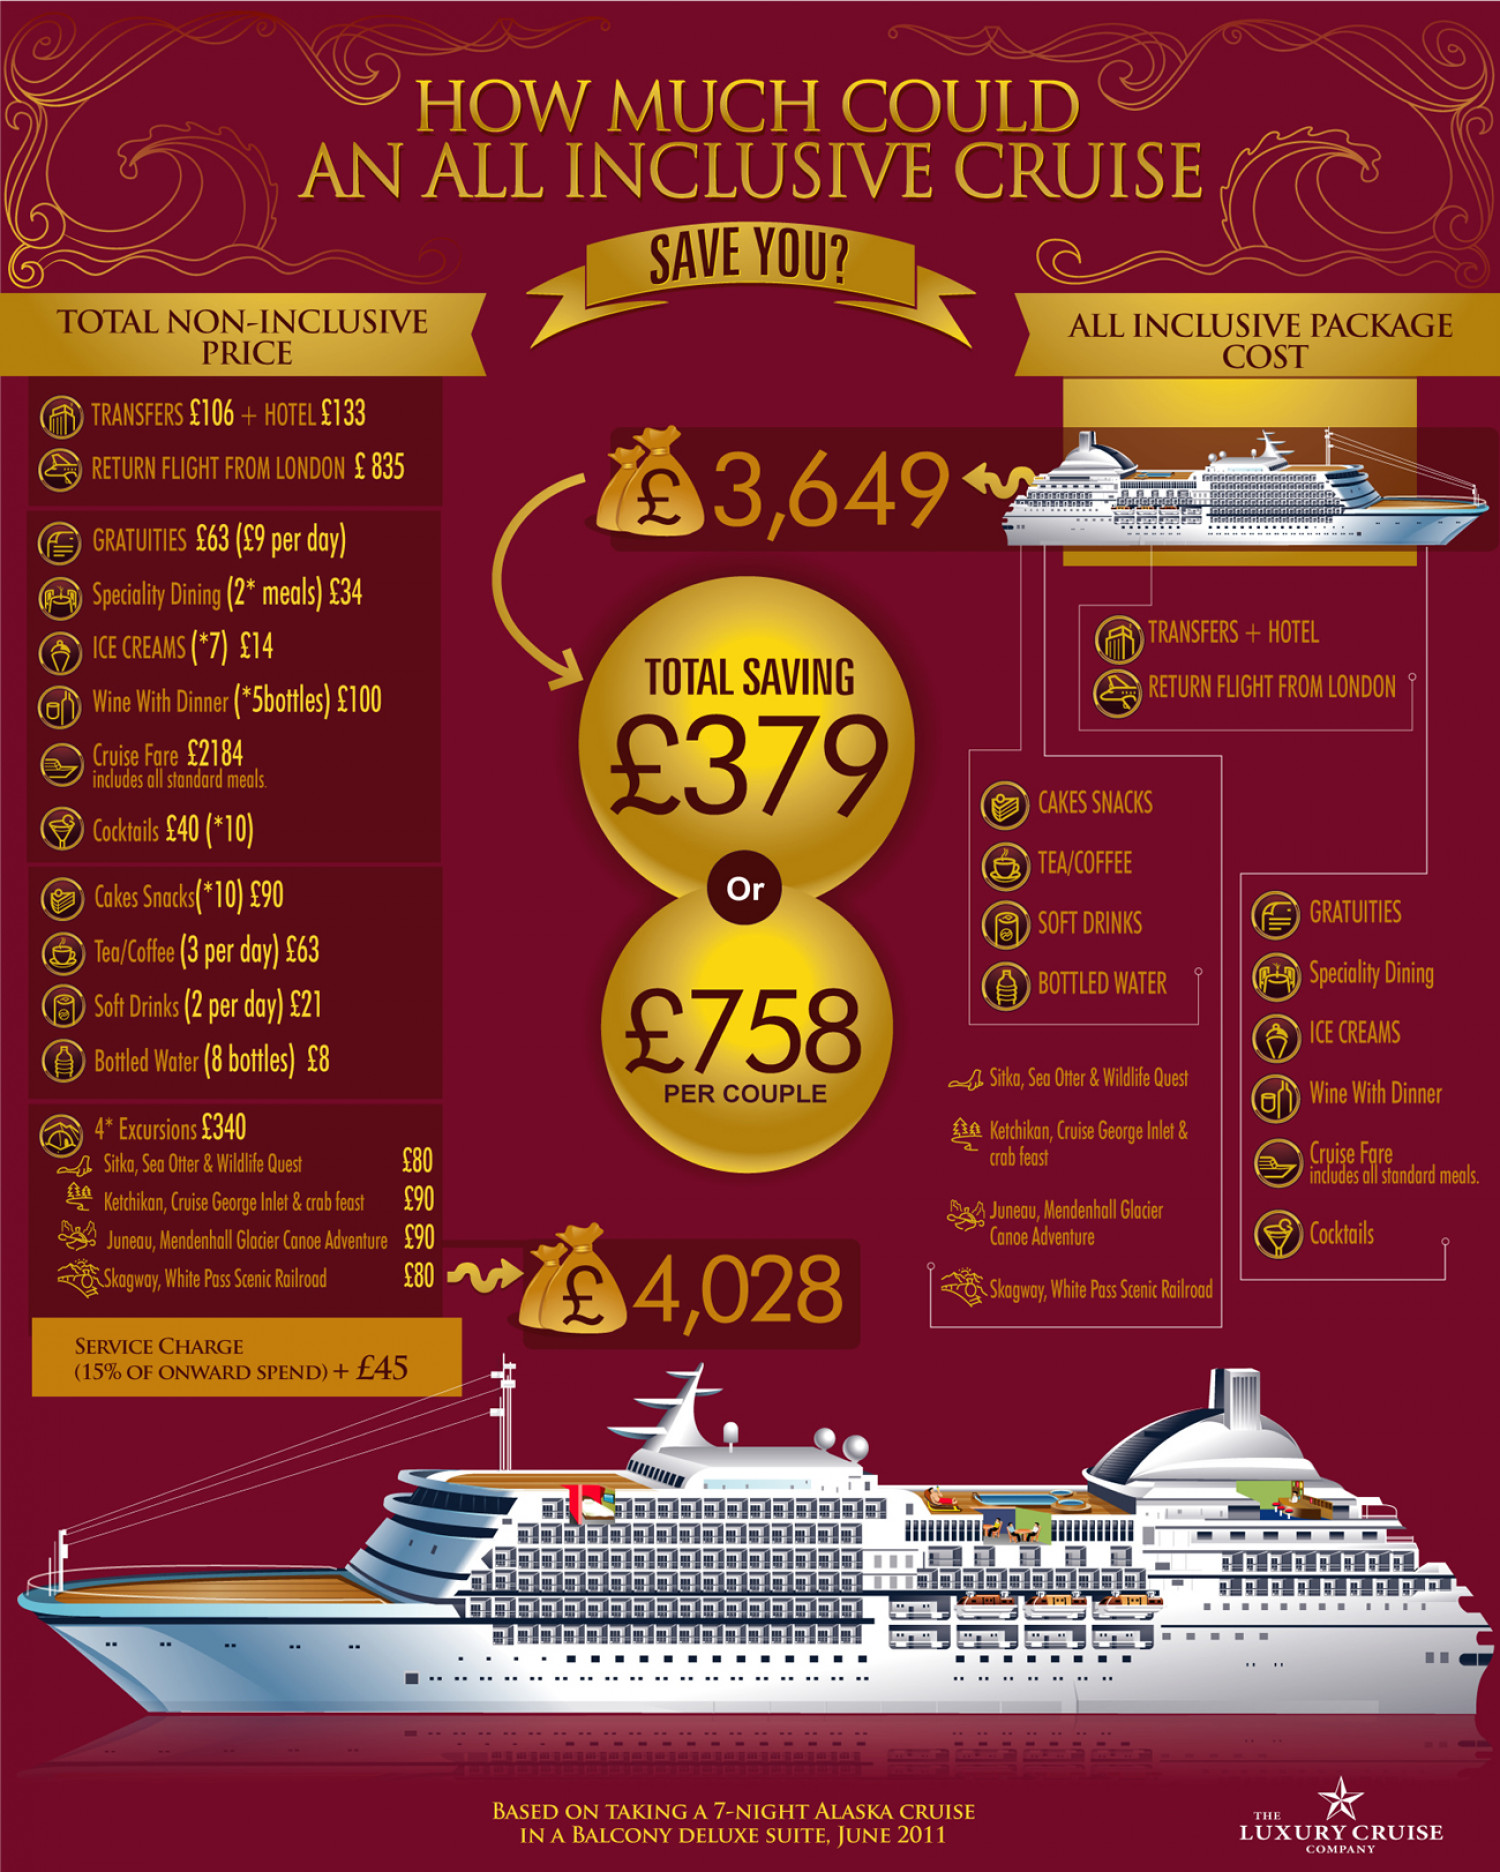 How much could an all inclusive cruise save you? Infographic